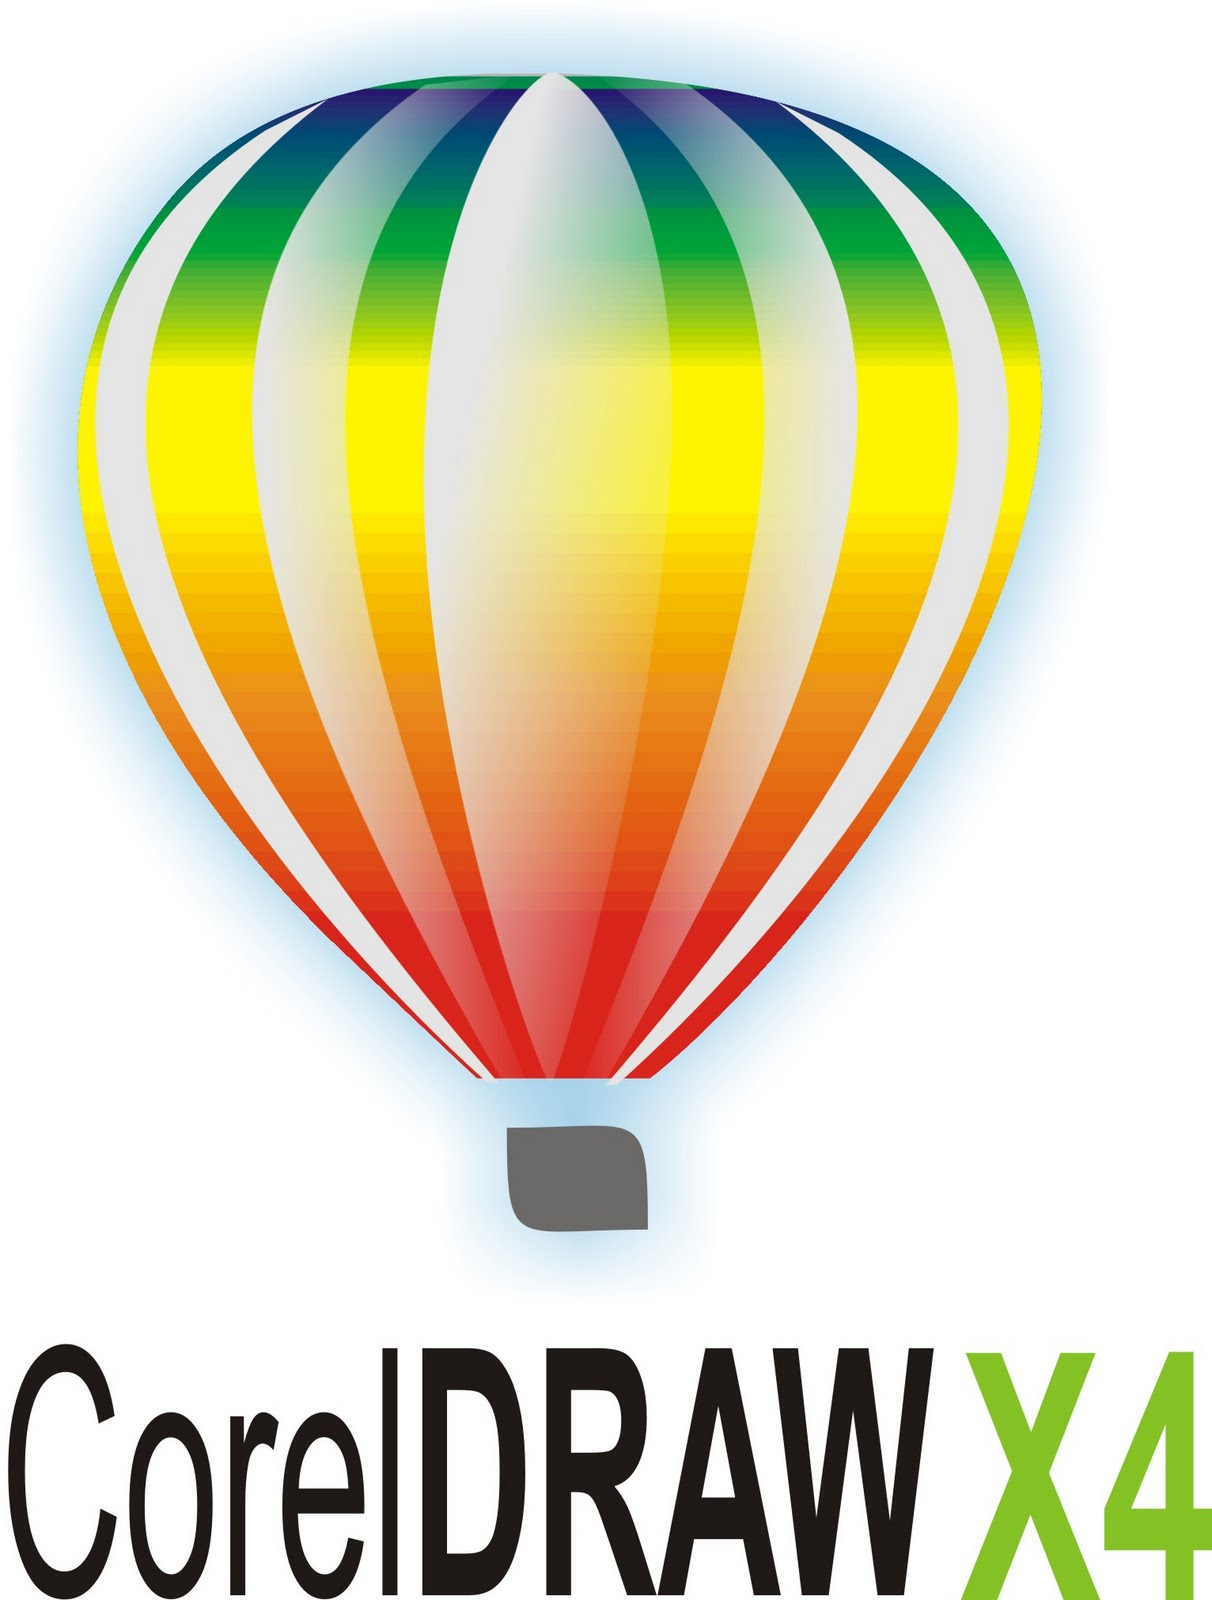 Did you know that there is a CorelDRAW product